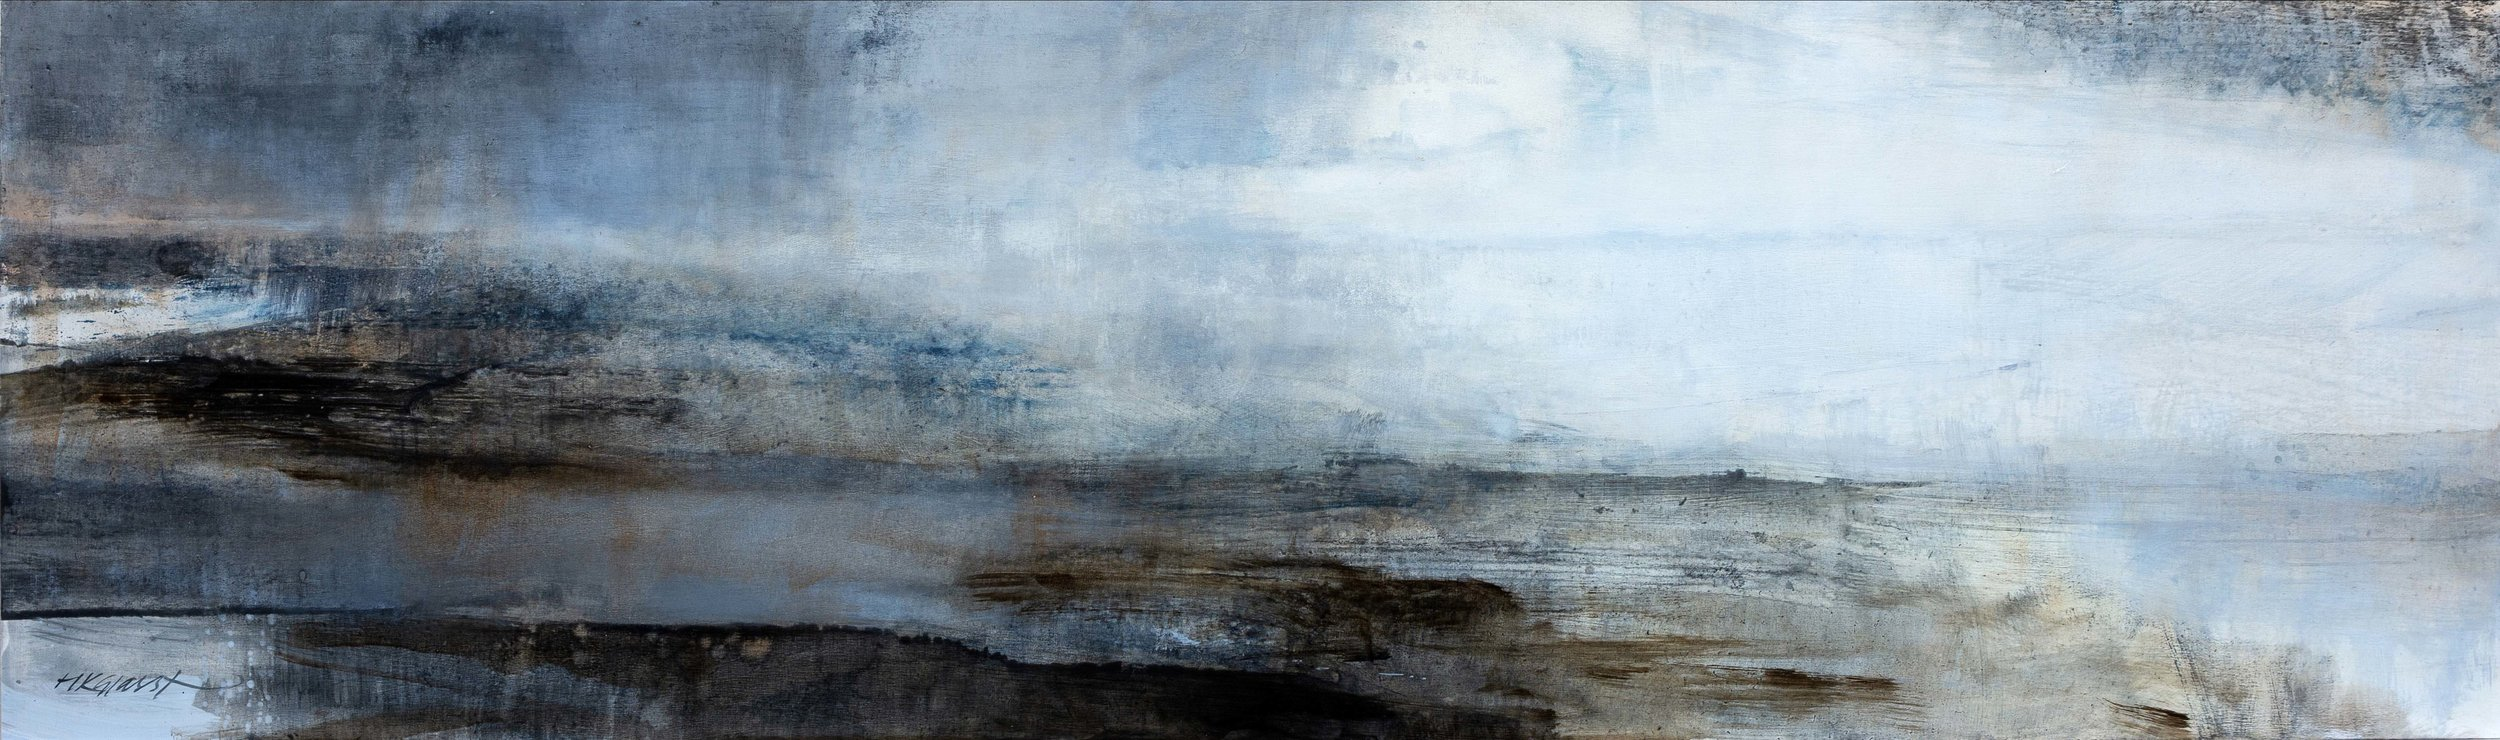 Spellbound • Oil on Board • 40x122cm • Sold